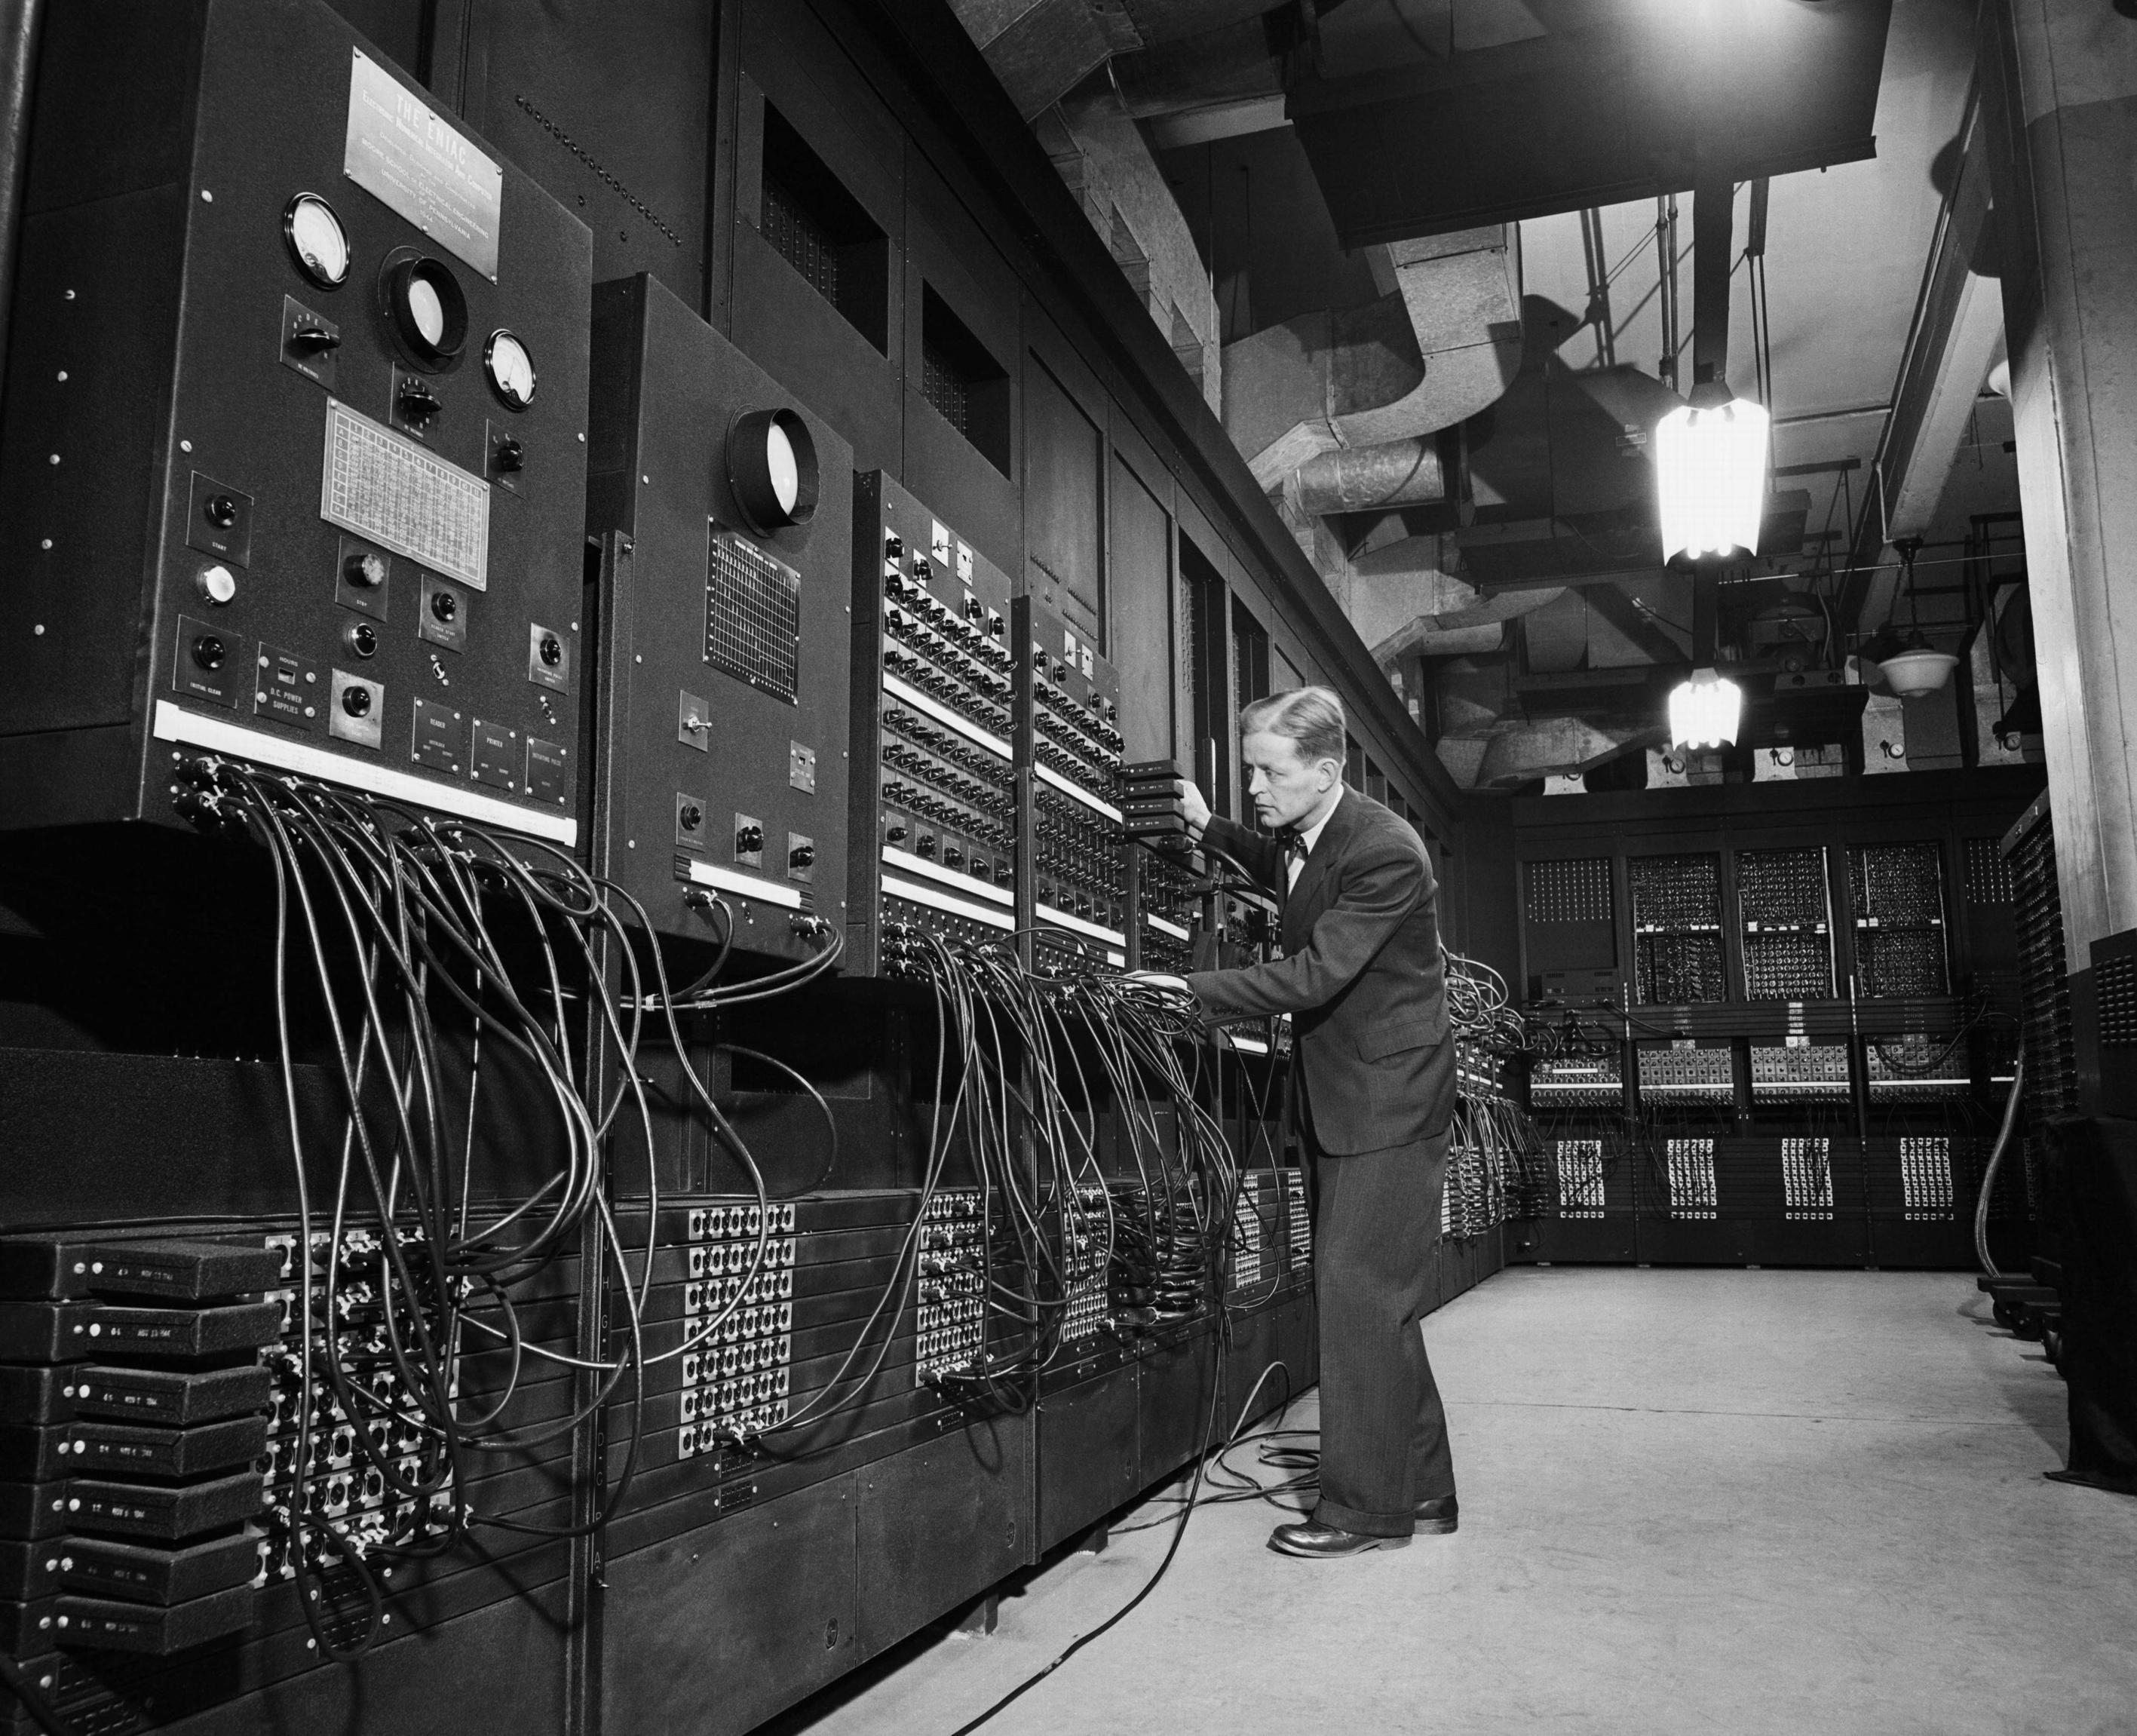 ENIAC Electronic Numerical Integrator And Computer the